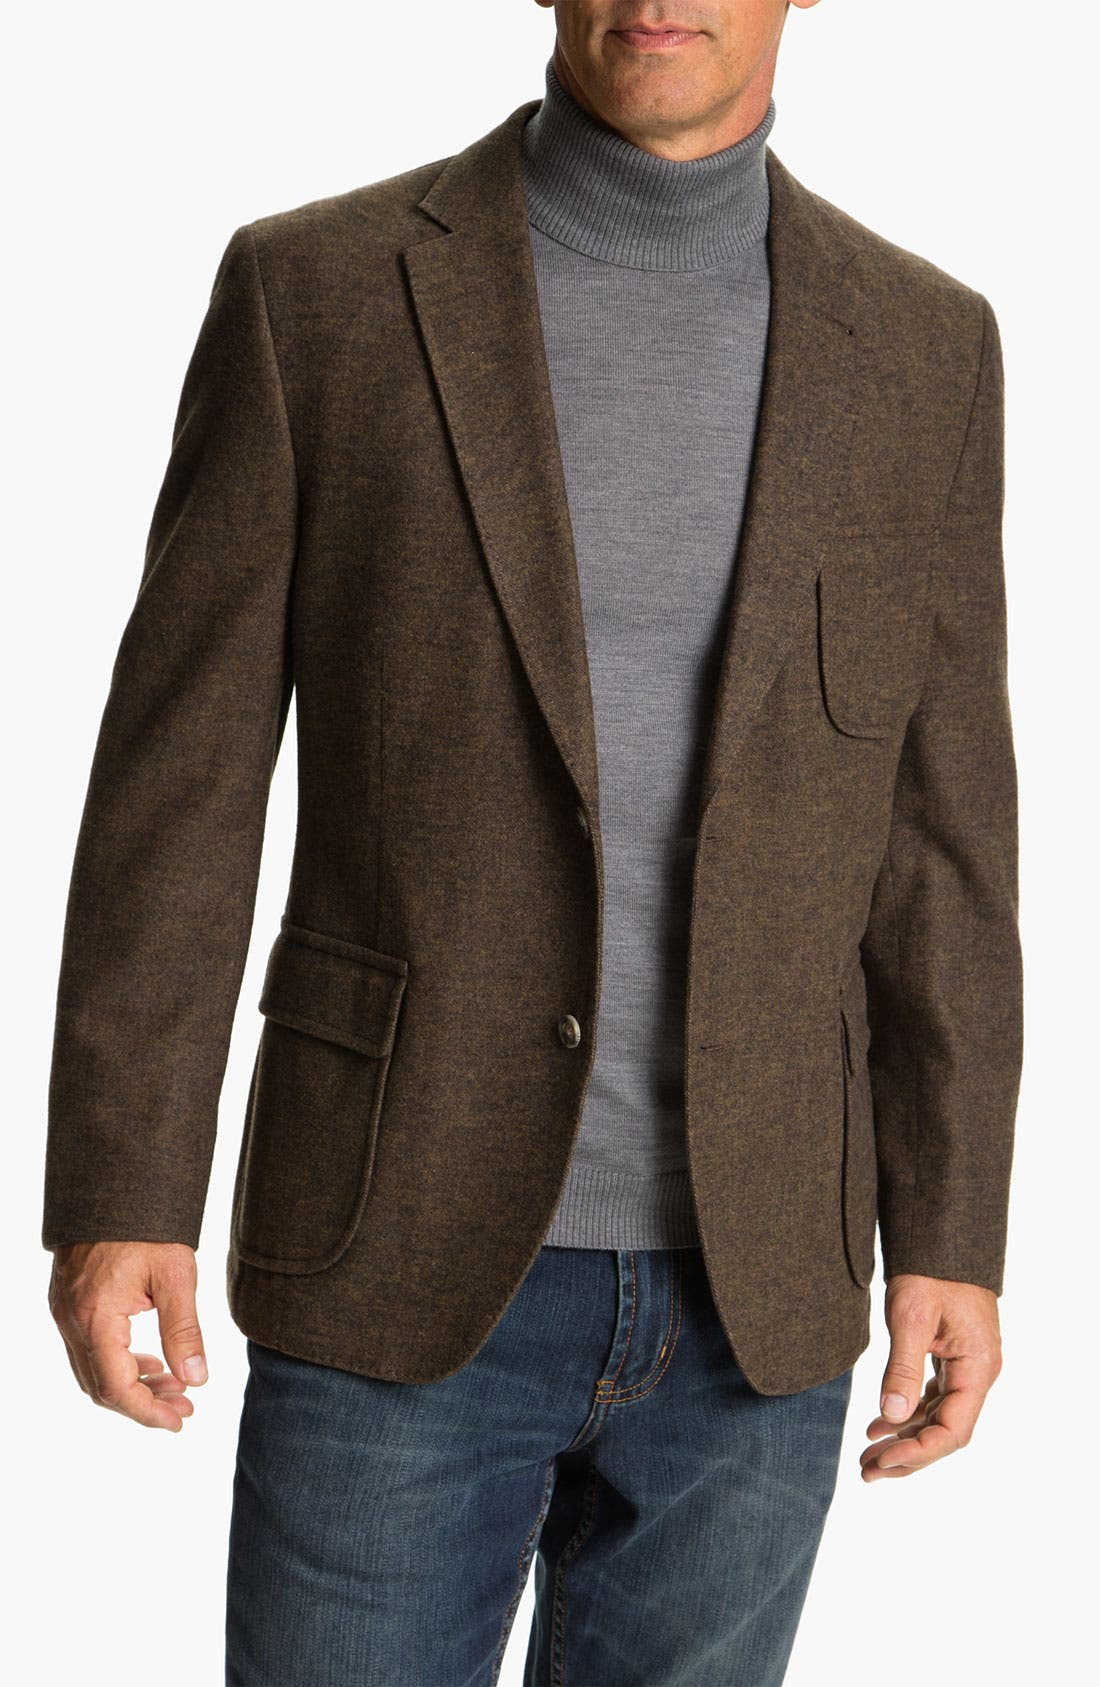 Main Image - Kroon 'Harrison' Wool & Cotton Blend  Sportcoat